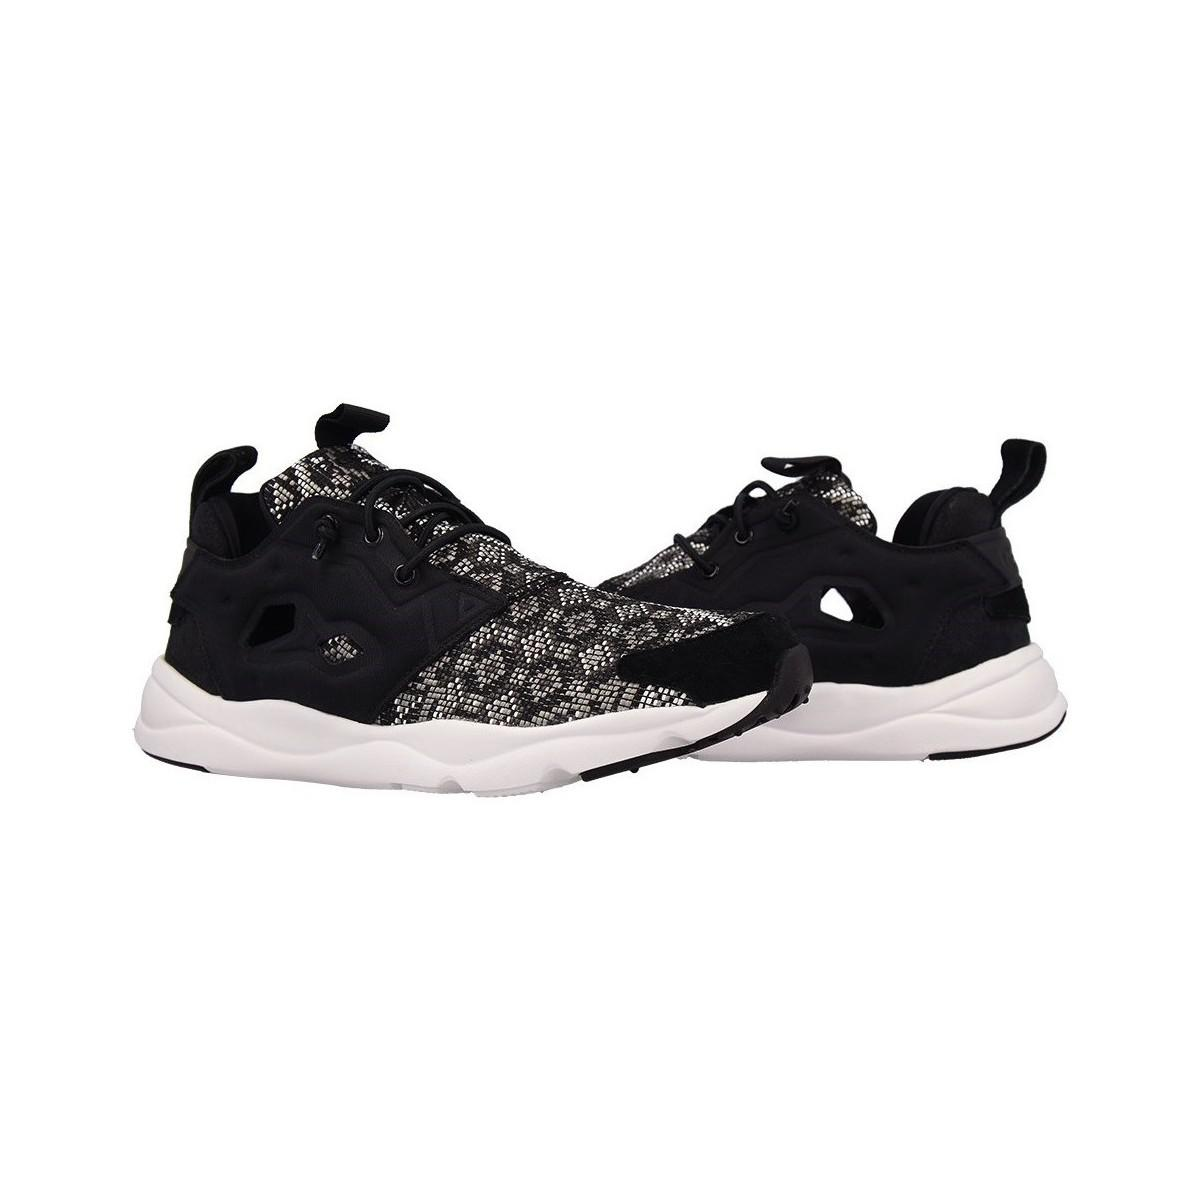 Reebok - Furylite Gt Women s Shoes (trainers) In Black - Lyst. View  fullscreen 63ee7d05f